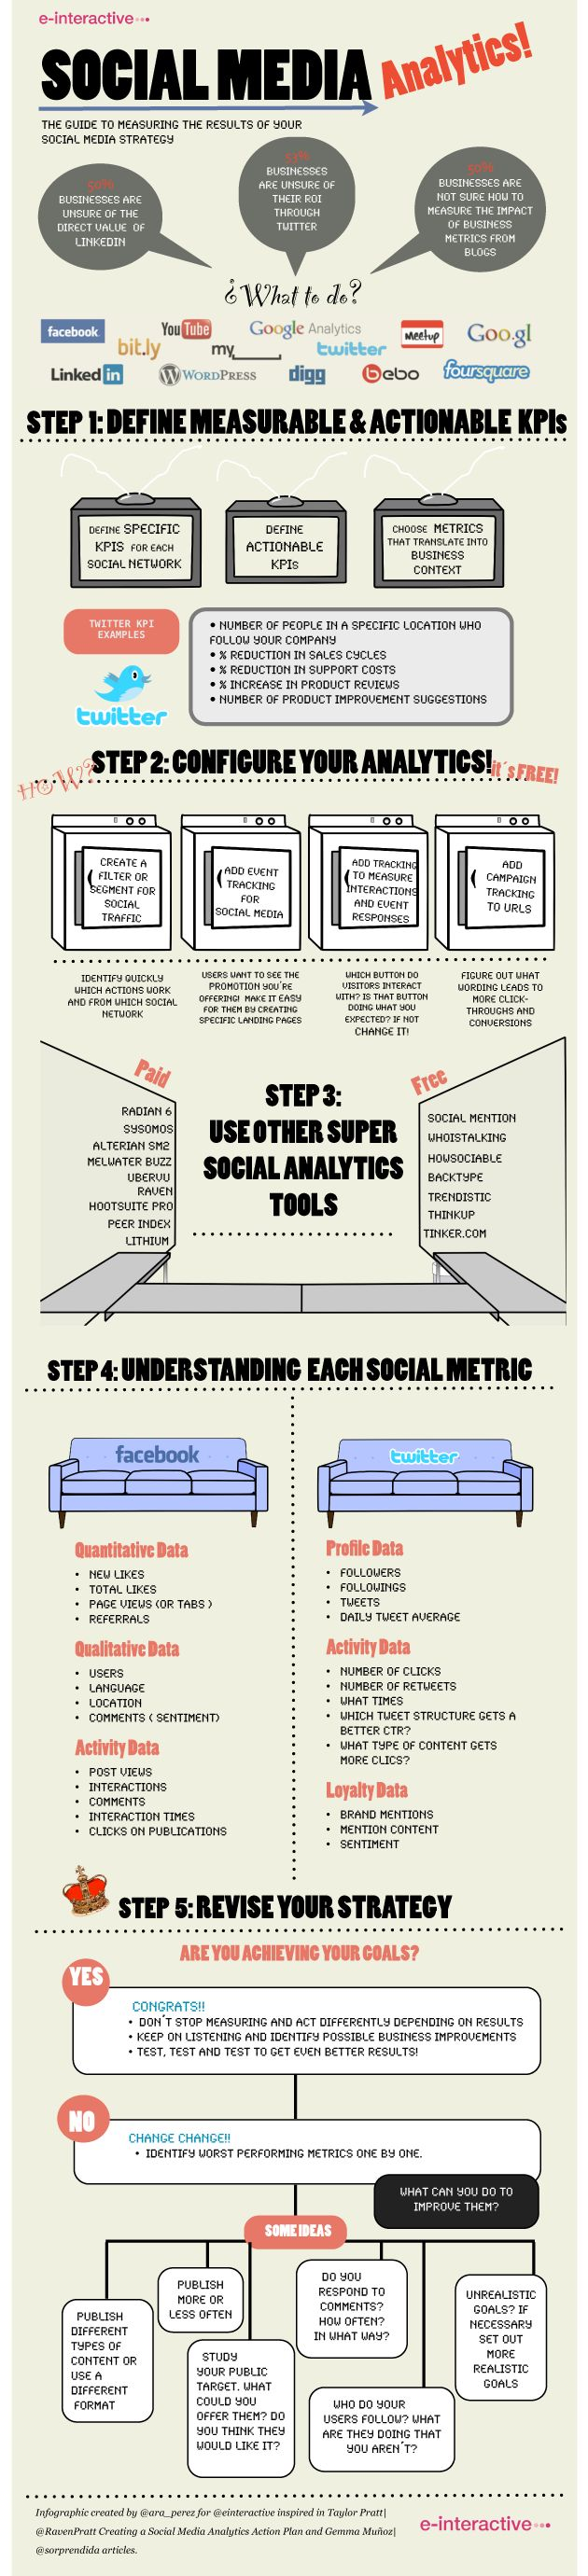 Social Media Analytics: Guide to Measuring the Results of Your Social Media Strategy